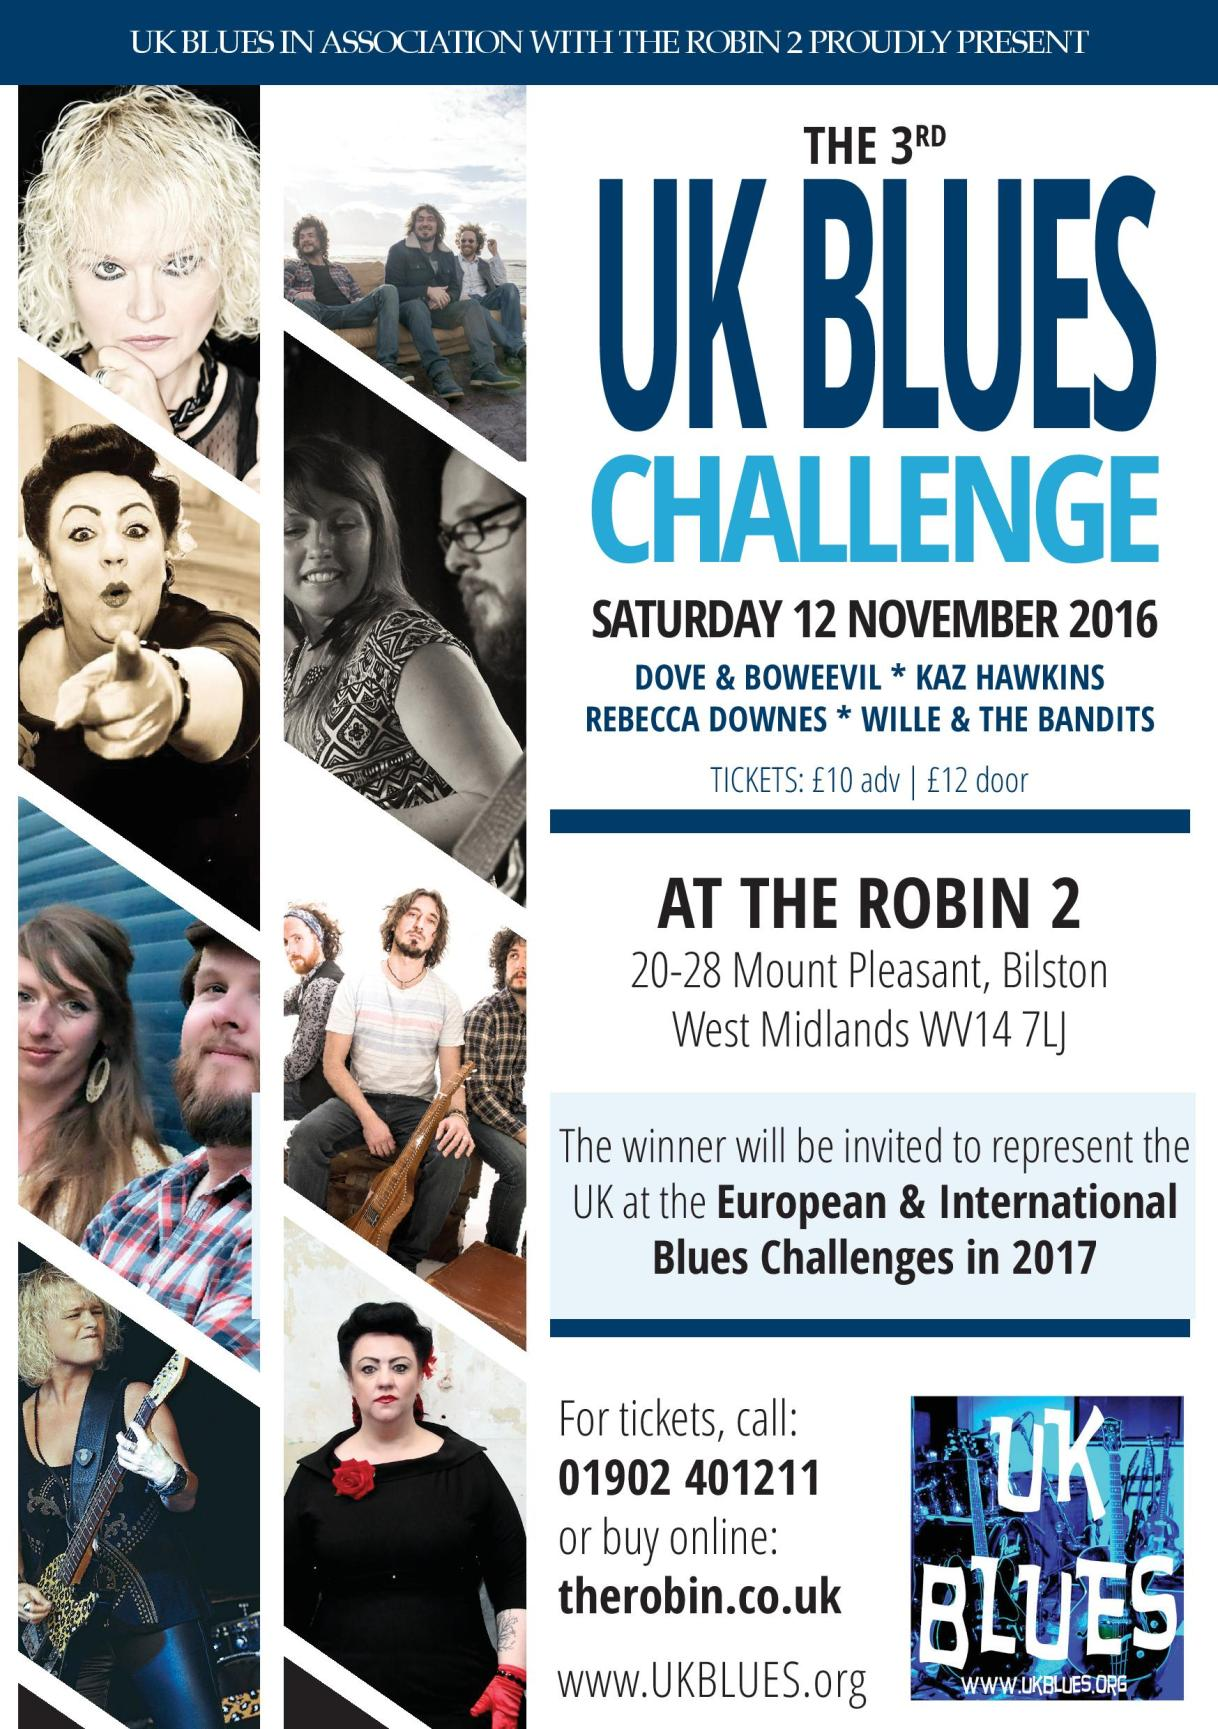 UK BLUES CHALLENGE 2016 at The Robin 2 Bilston